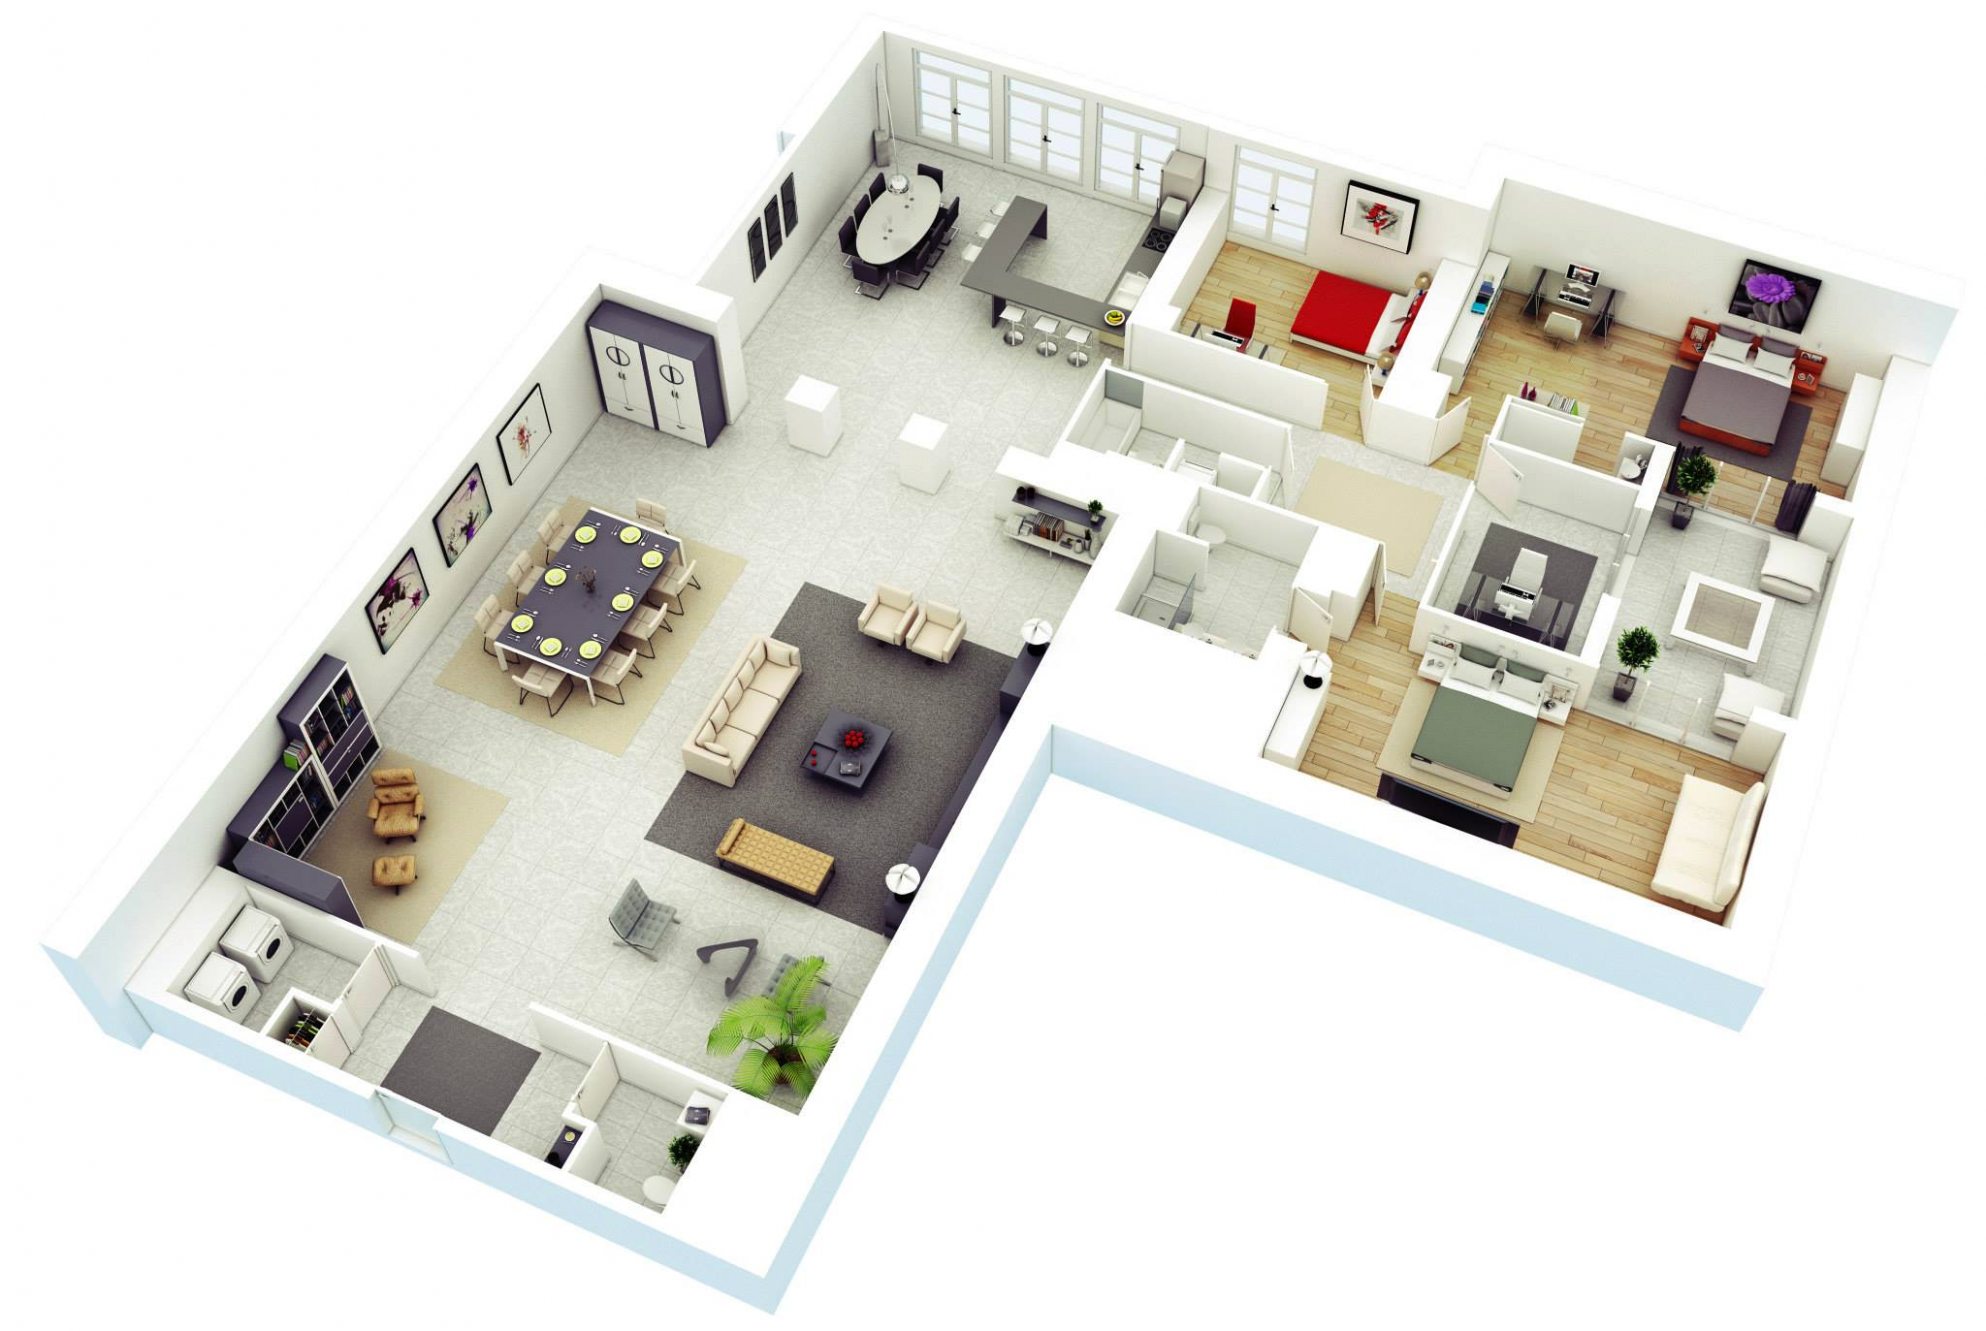 11 More 11 Bedroom 11D Floor Plans - apartment design architecture pdf